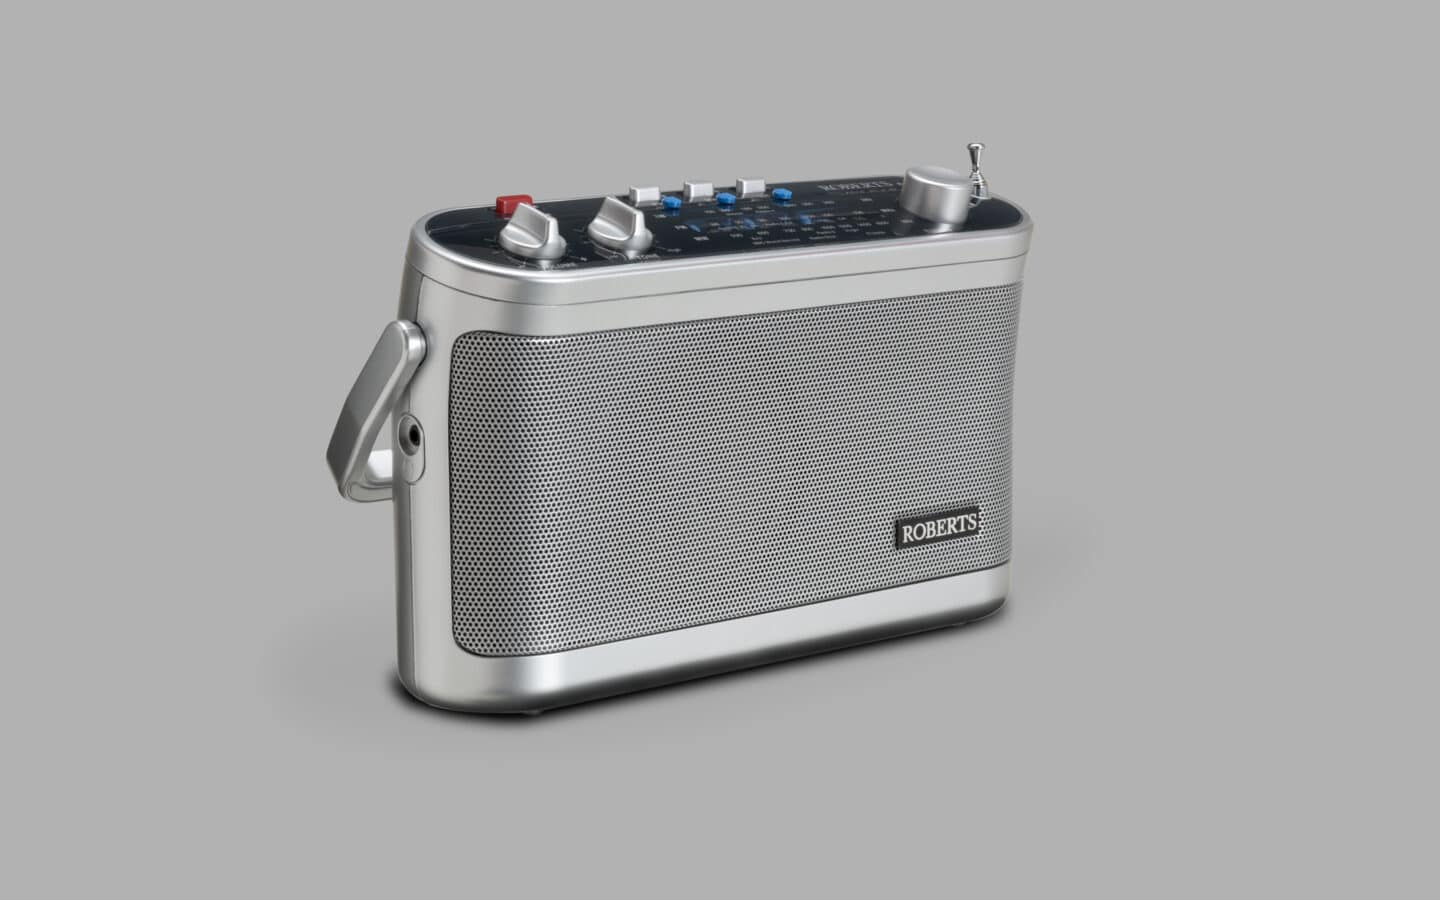 Roberts Radio Classic R9954 Review 2